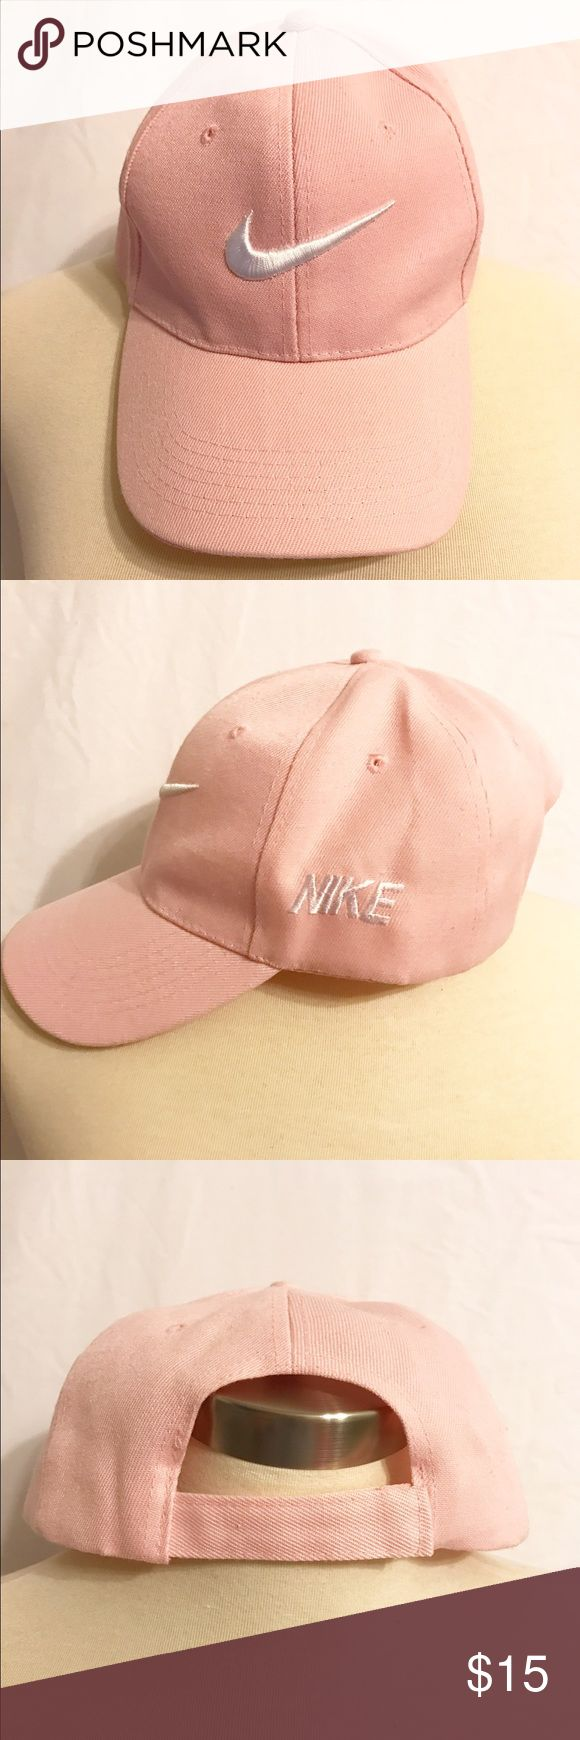 Nike hat Pink Nike hat with white Nike sign. So cute for a comfy or casual day! Nike Accessories Hats